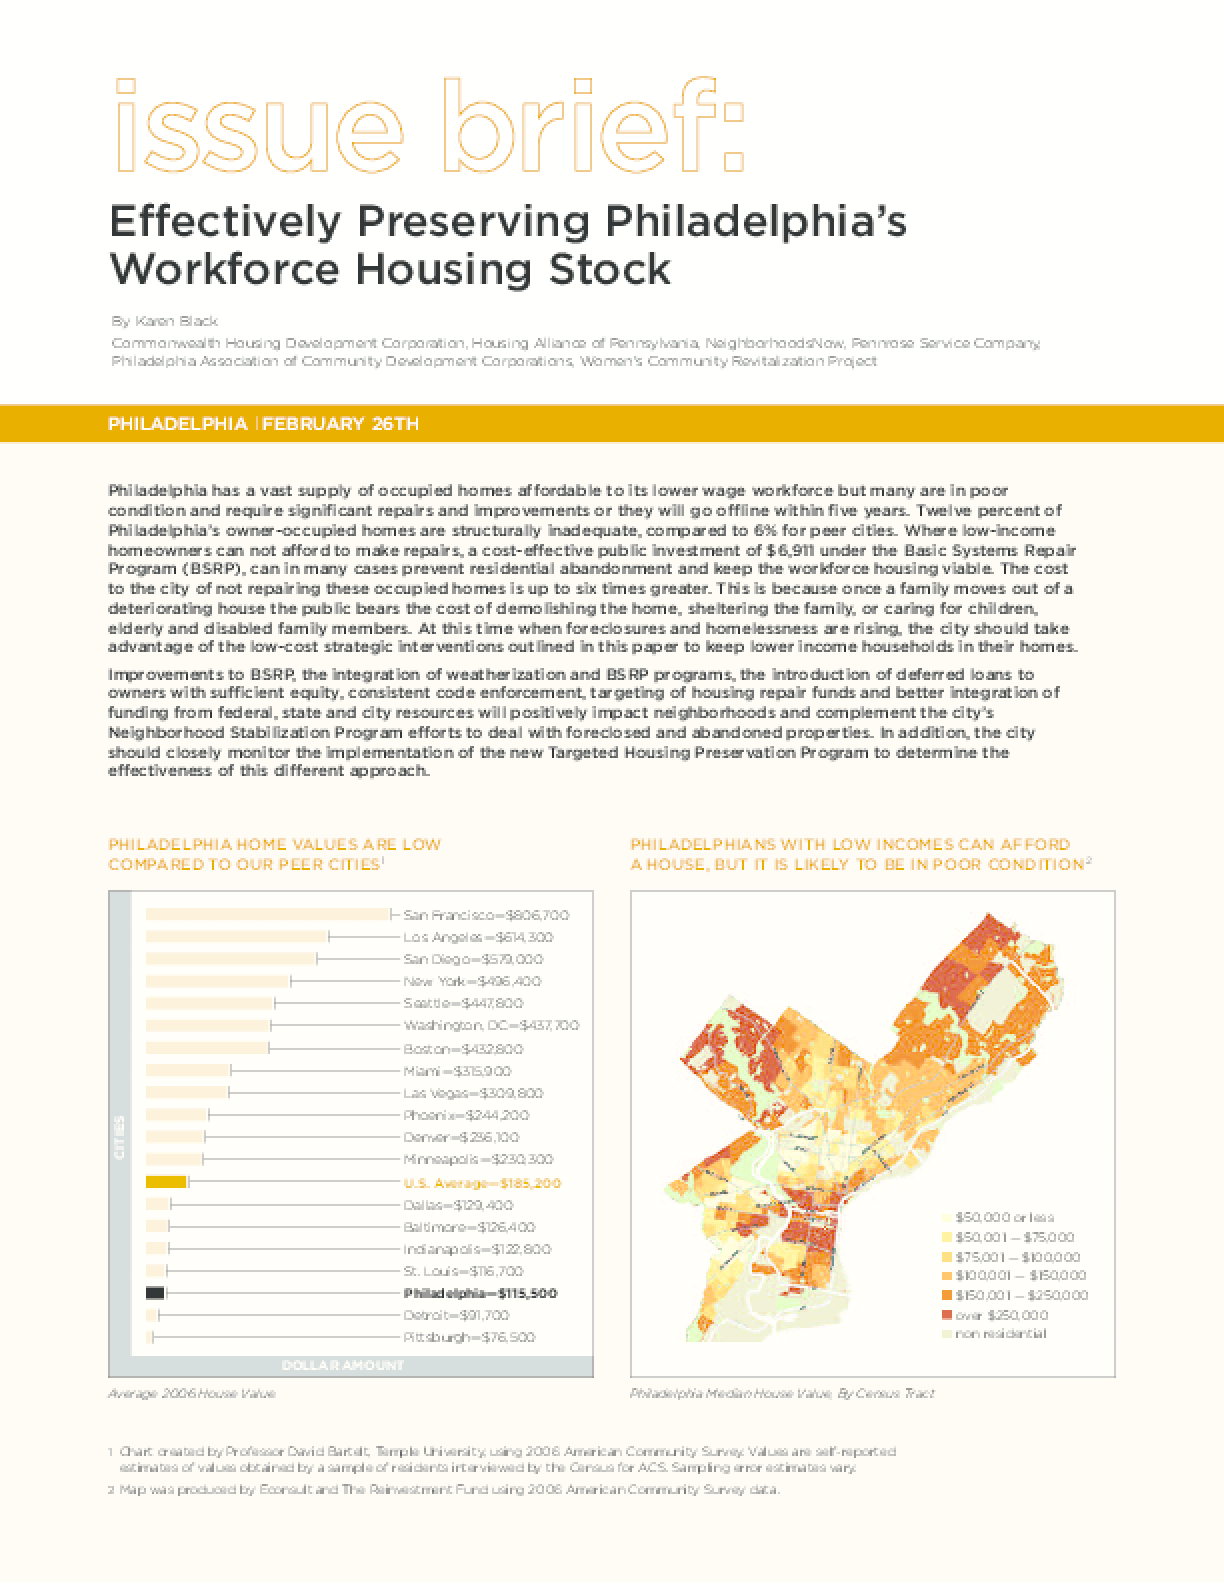 Effectively Preserving Philadelphia's Workforce Housing Stock